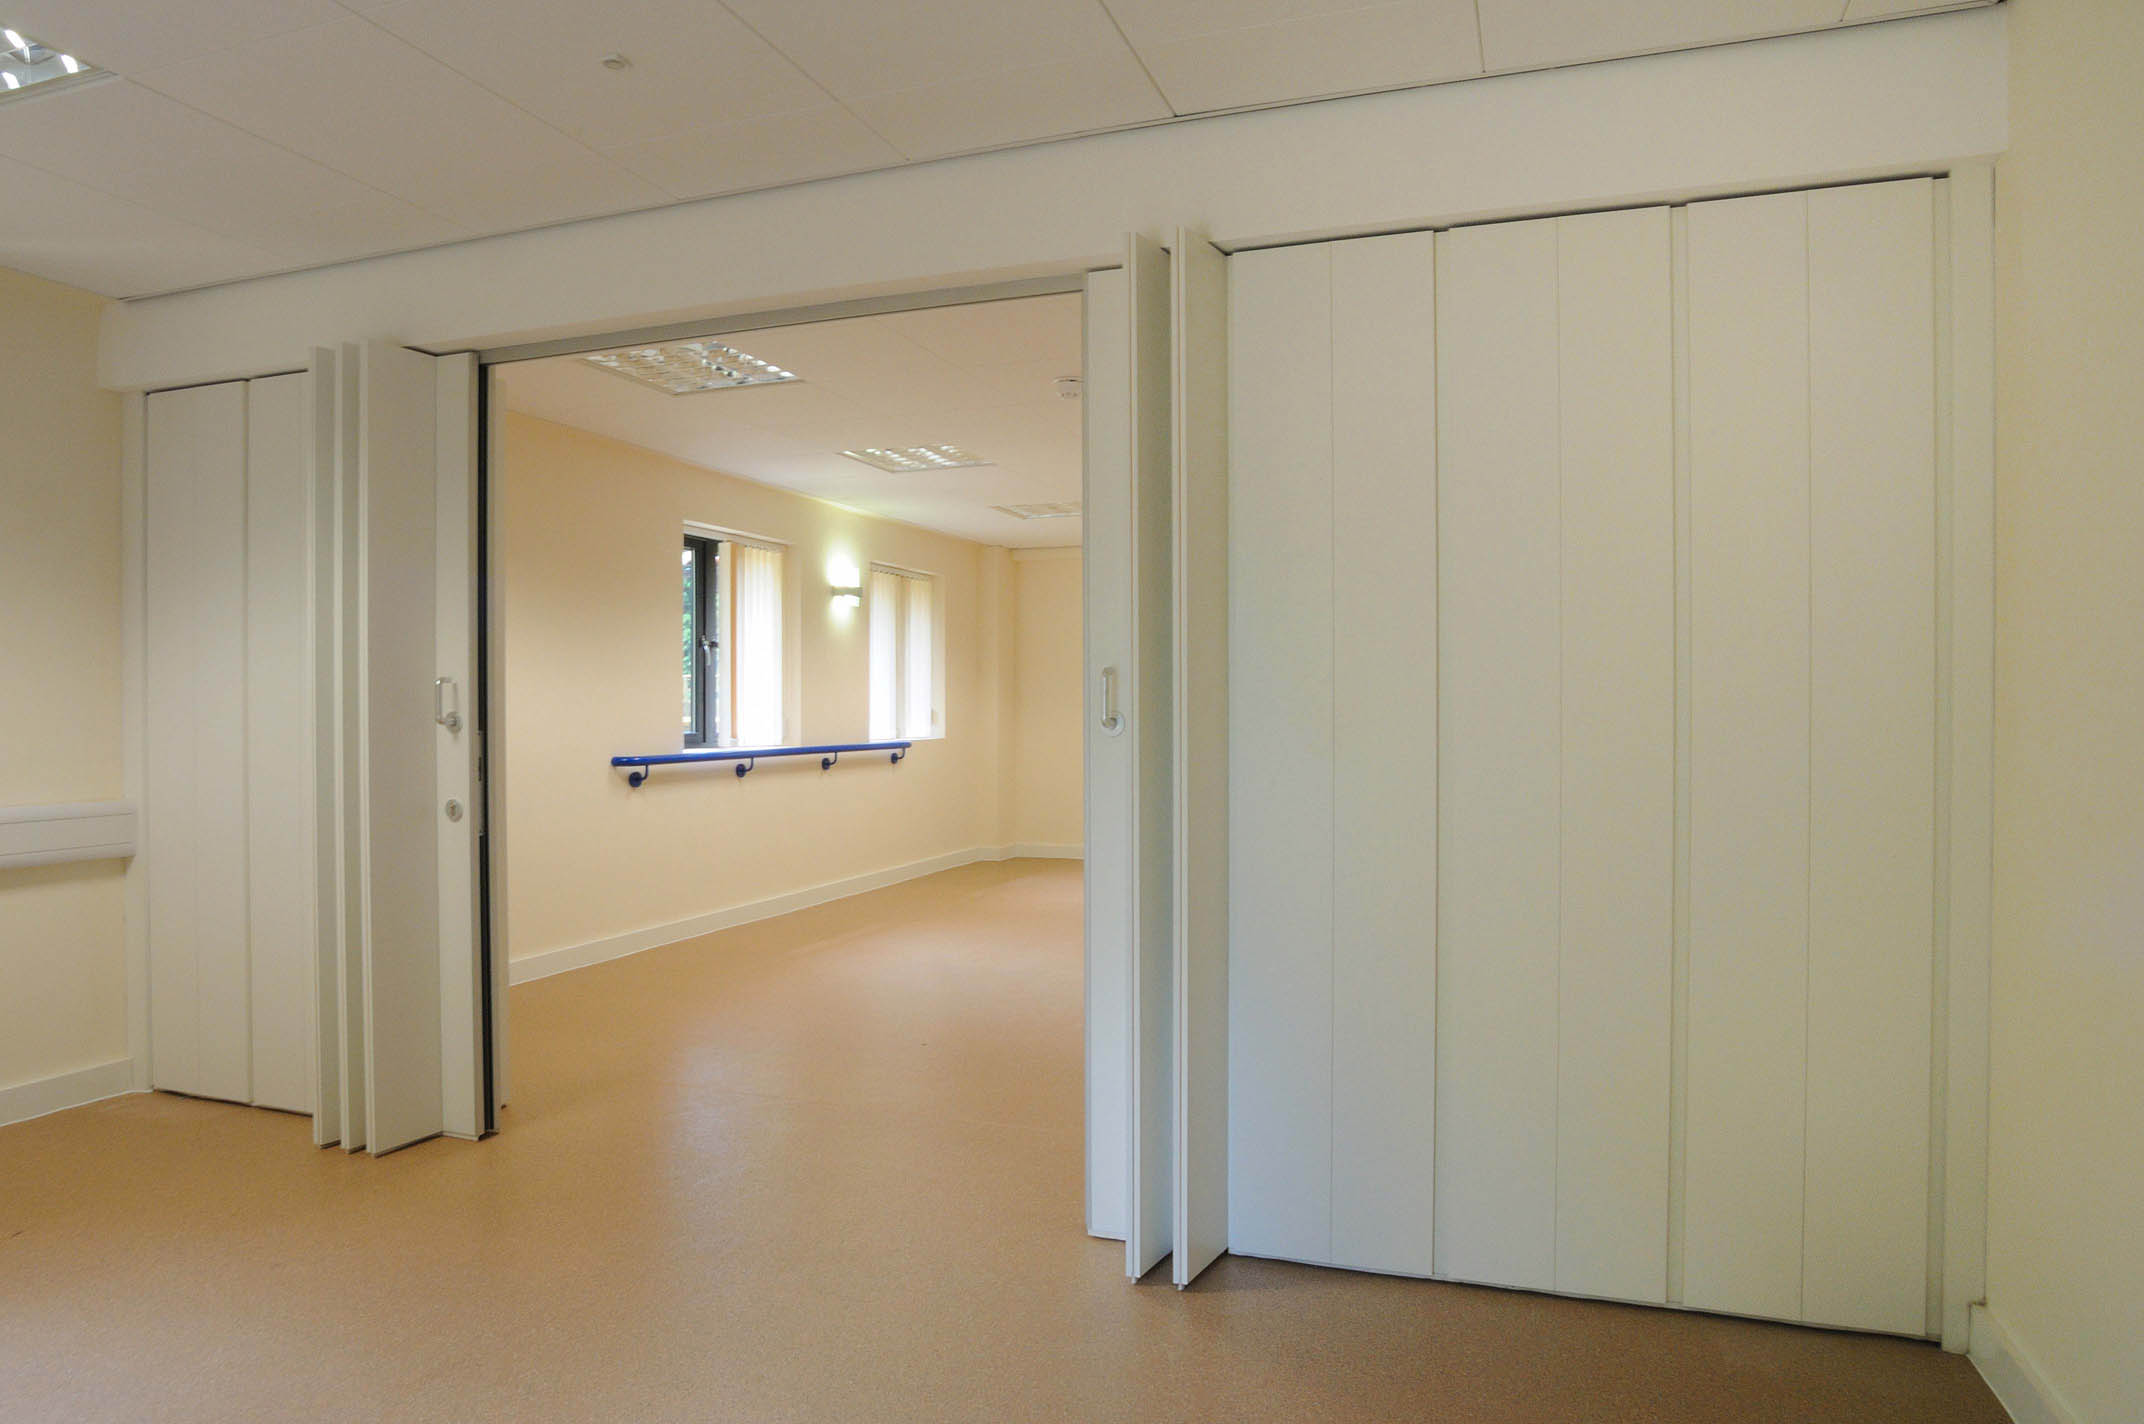 becker sliding partitions ltd